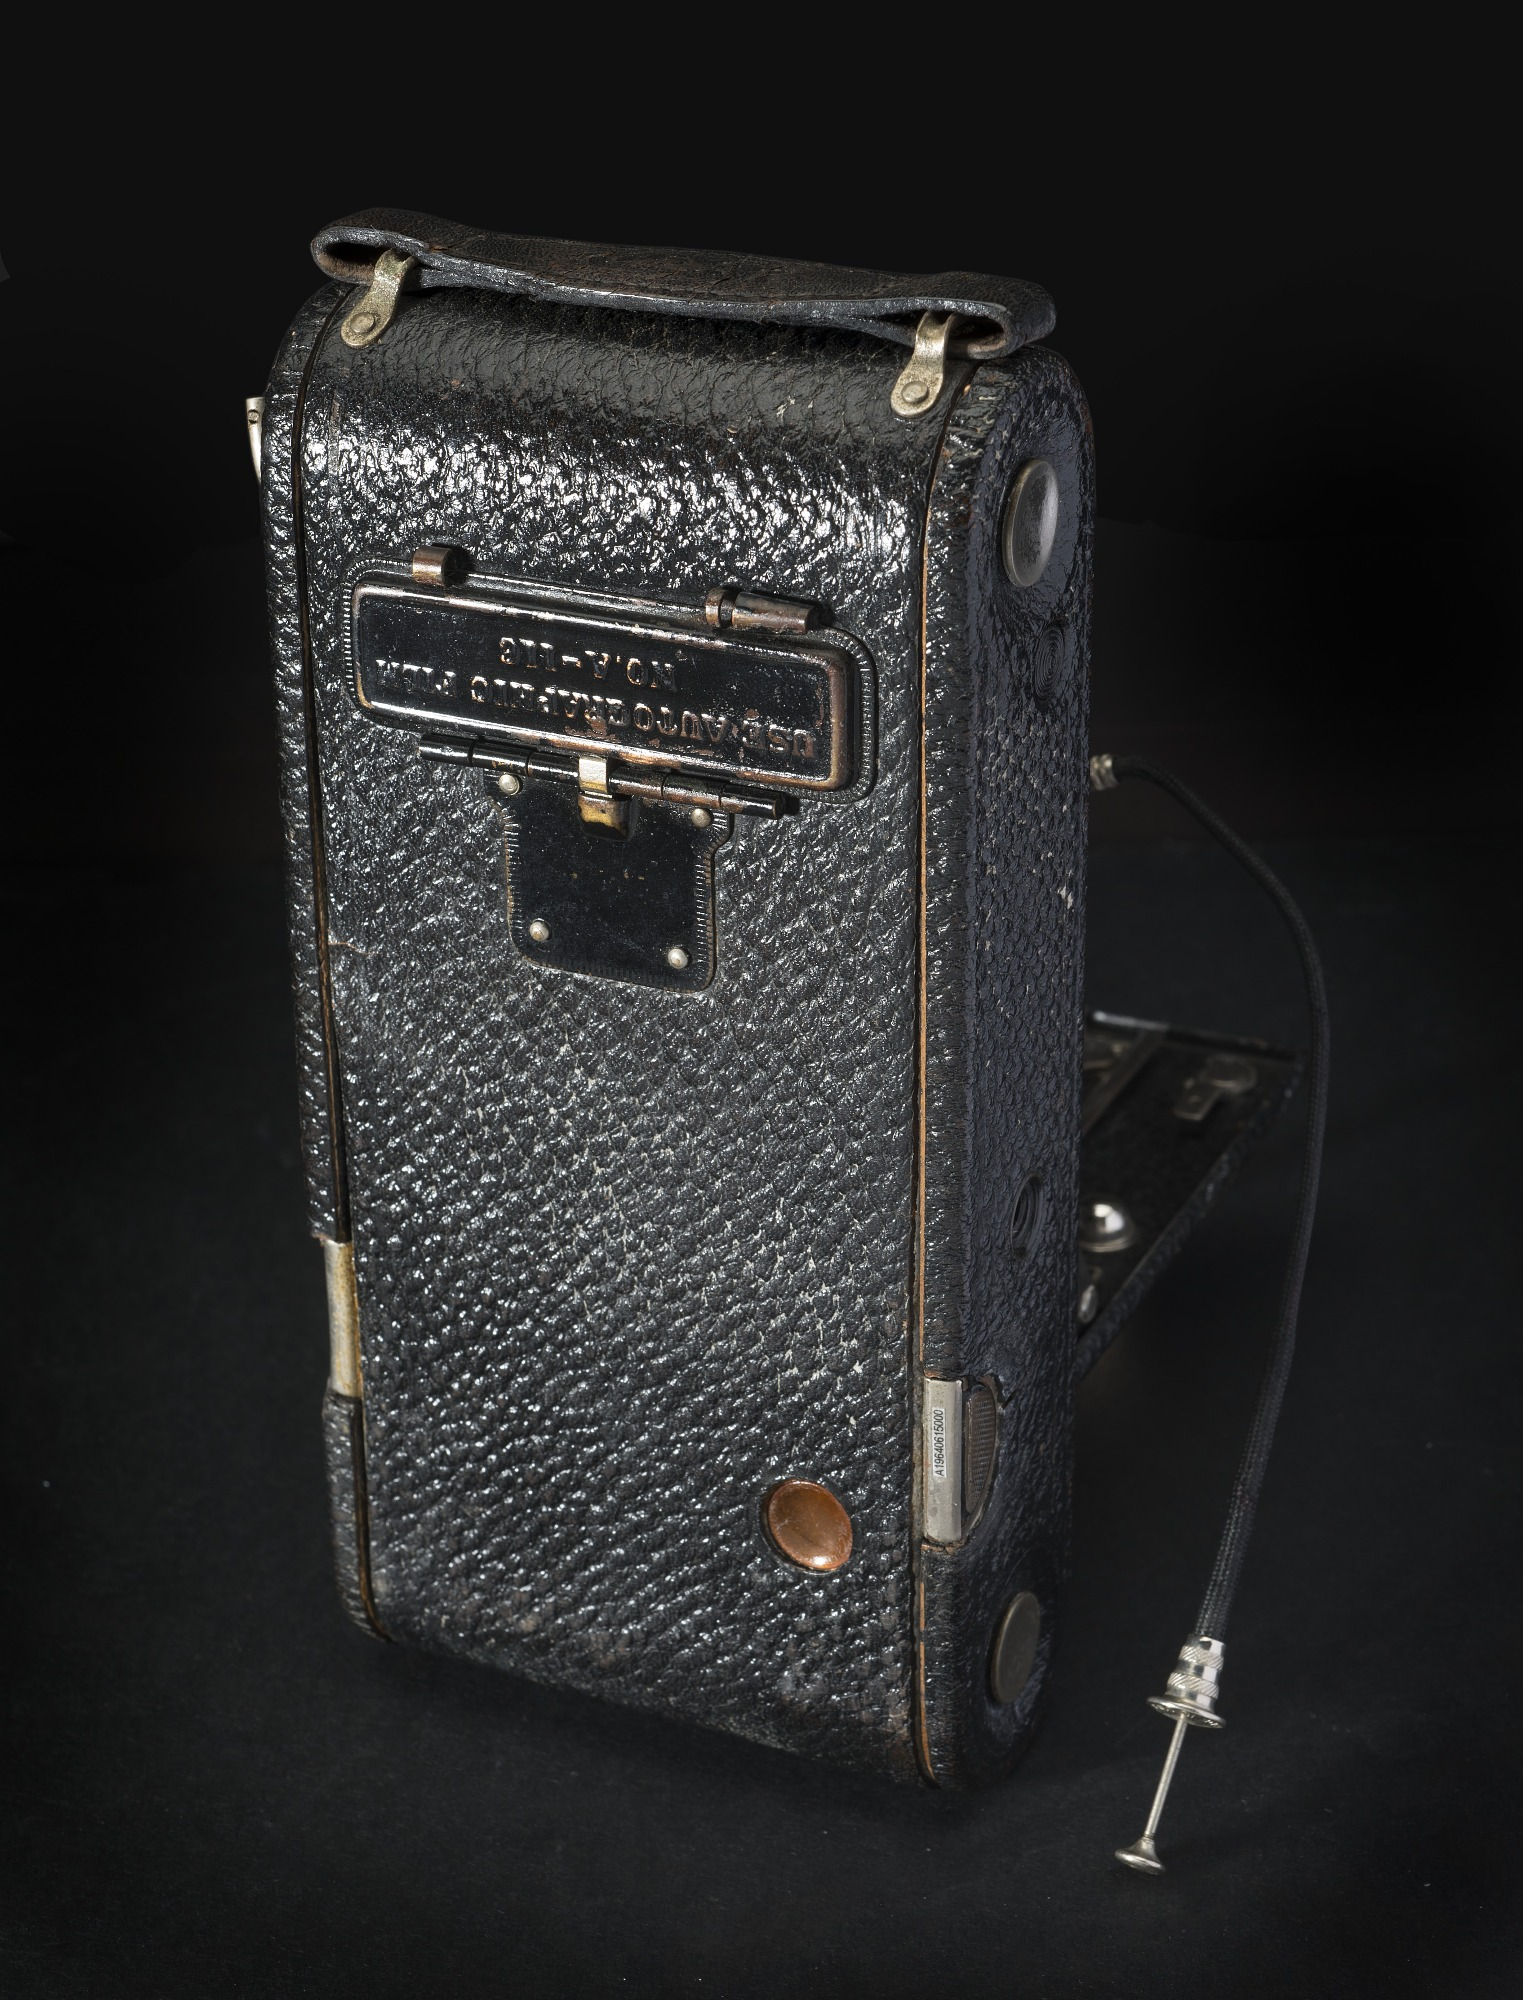 Image of : Camera, Kodak, 1A Autographic Junior, Lt. Lowell Smith